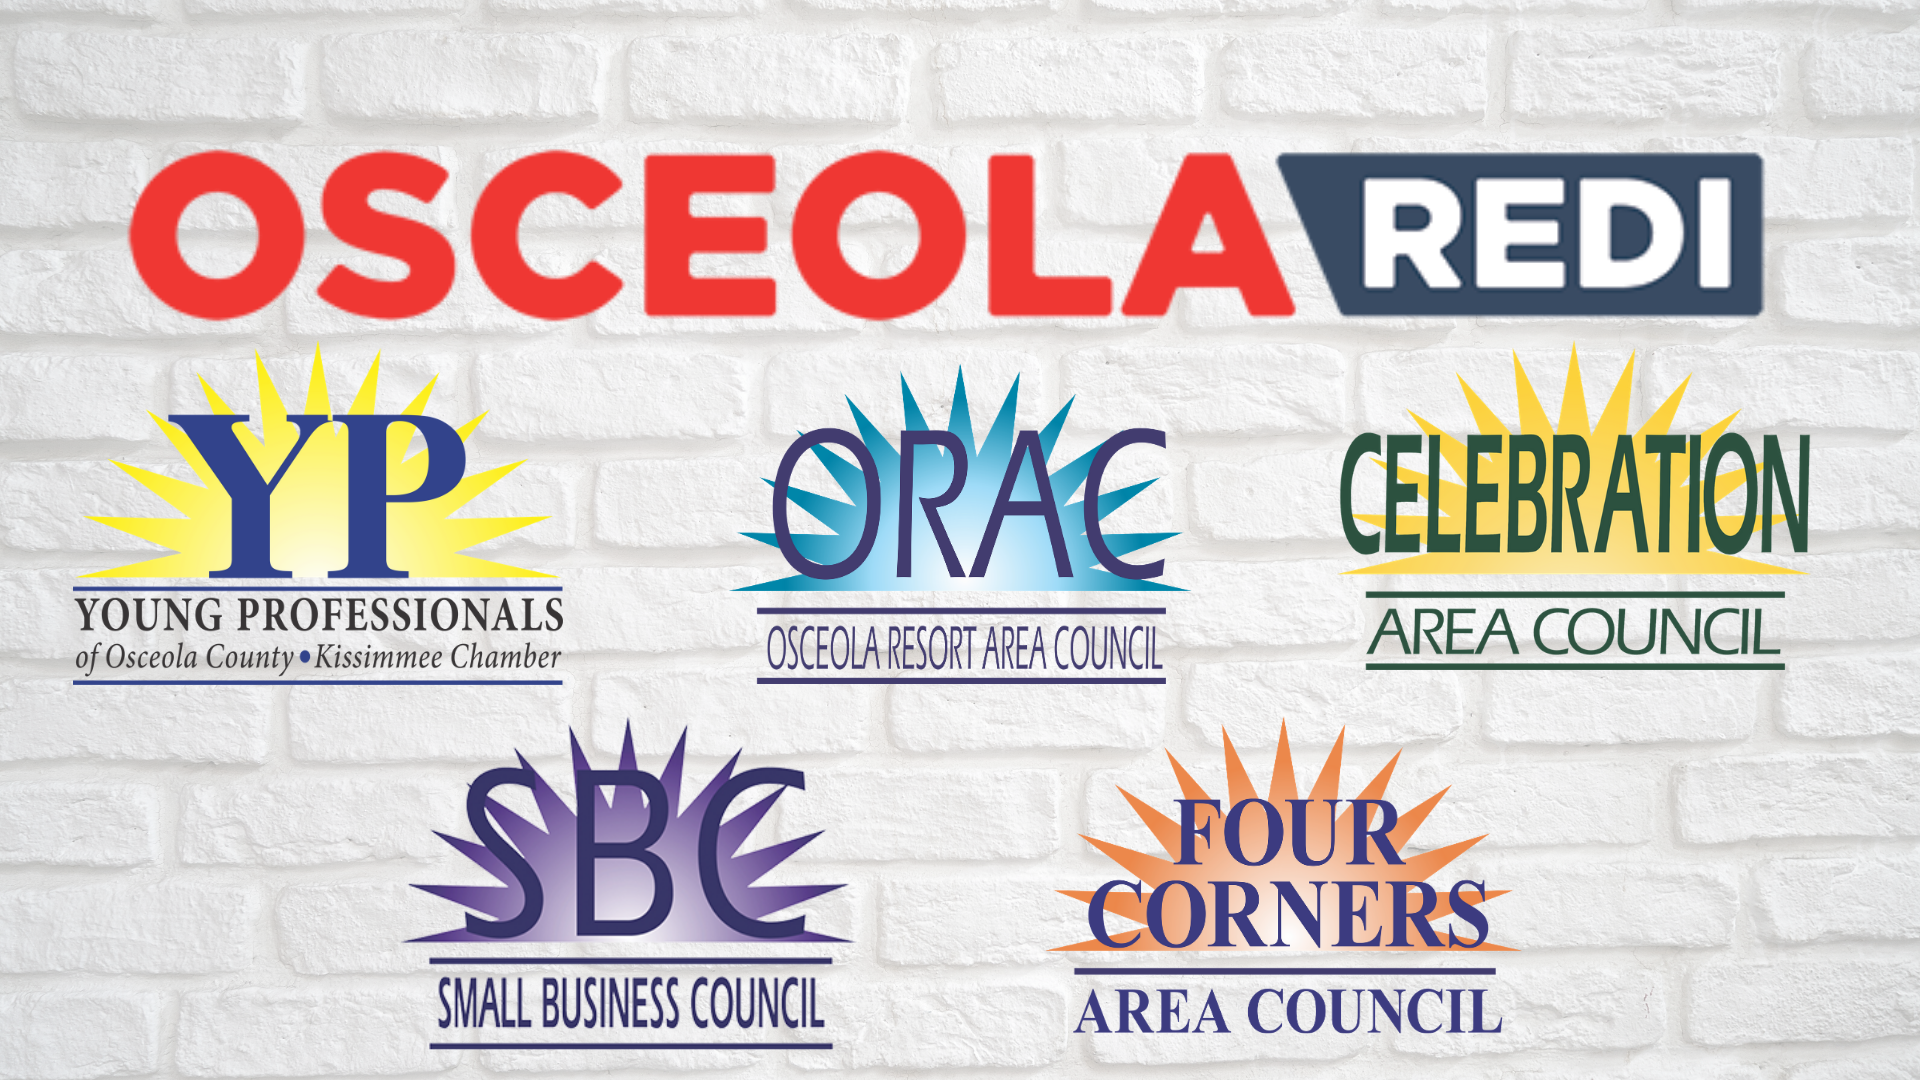 Chamber Area Councils Continue Donations To Osceola REDI